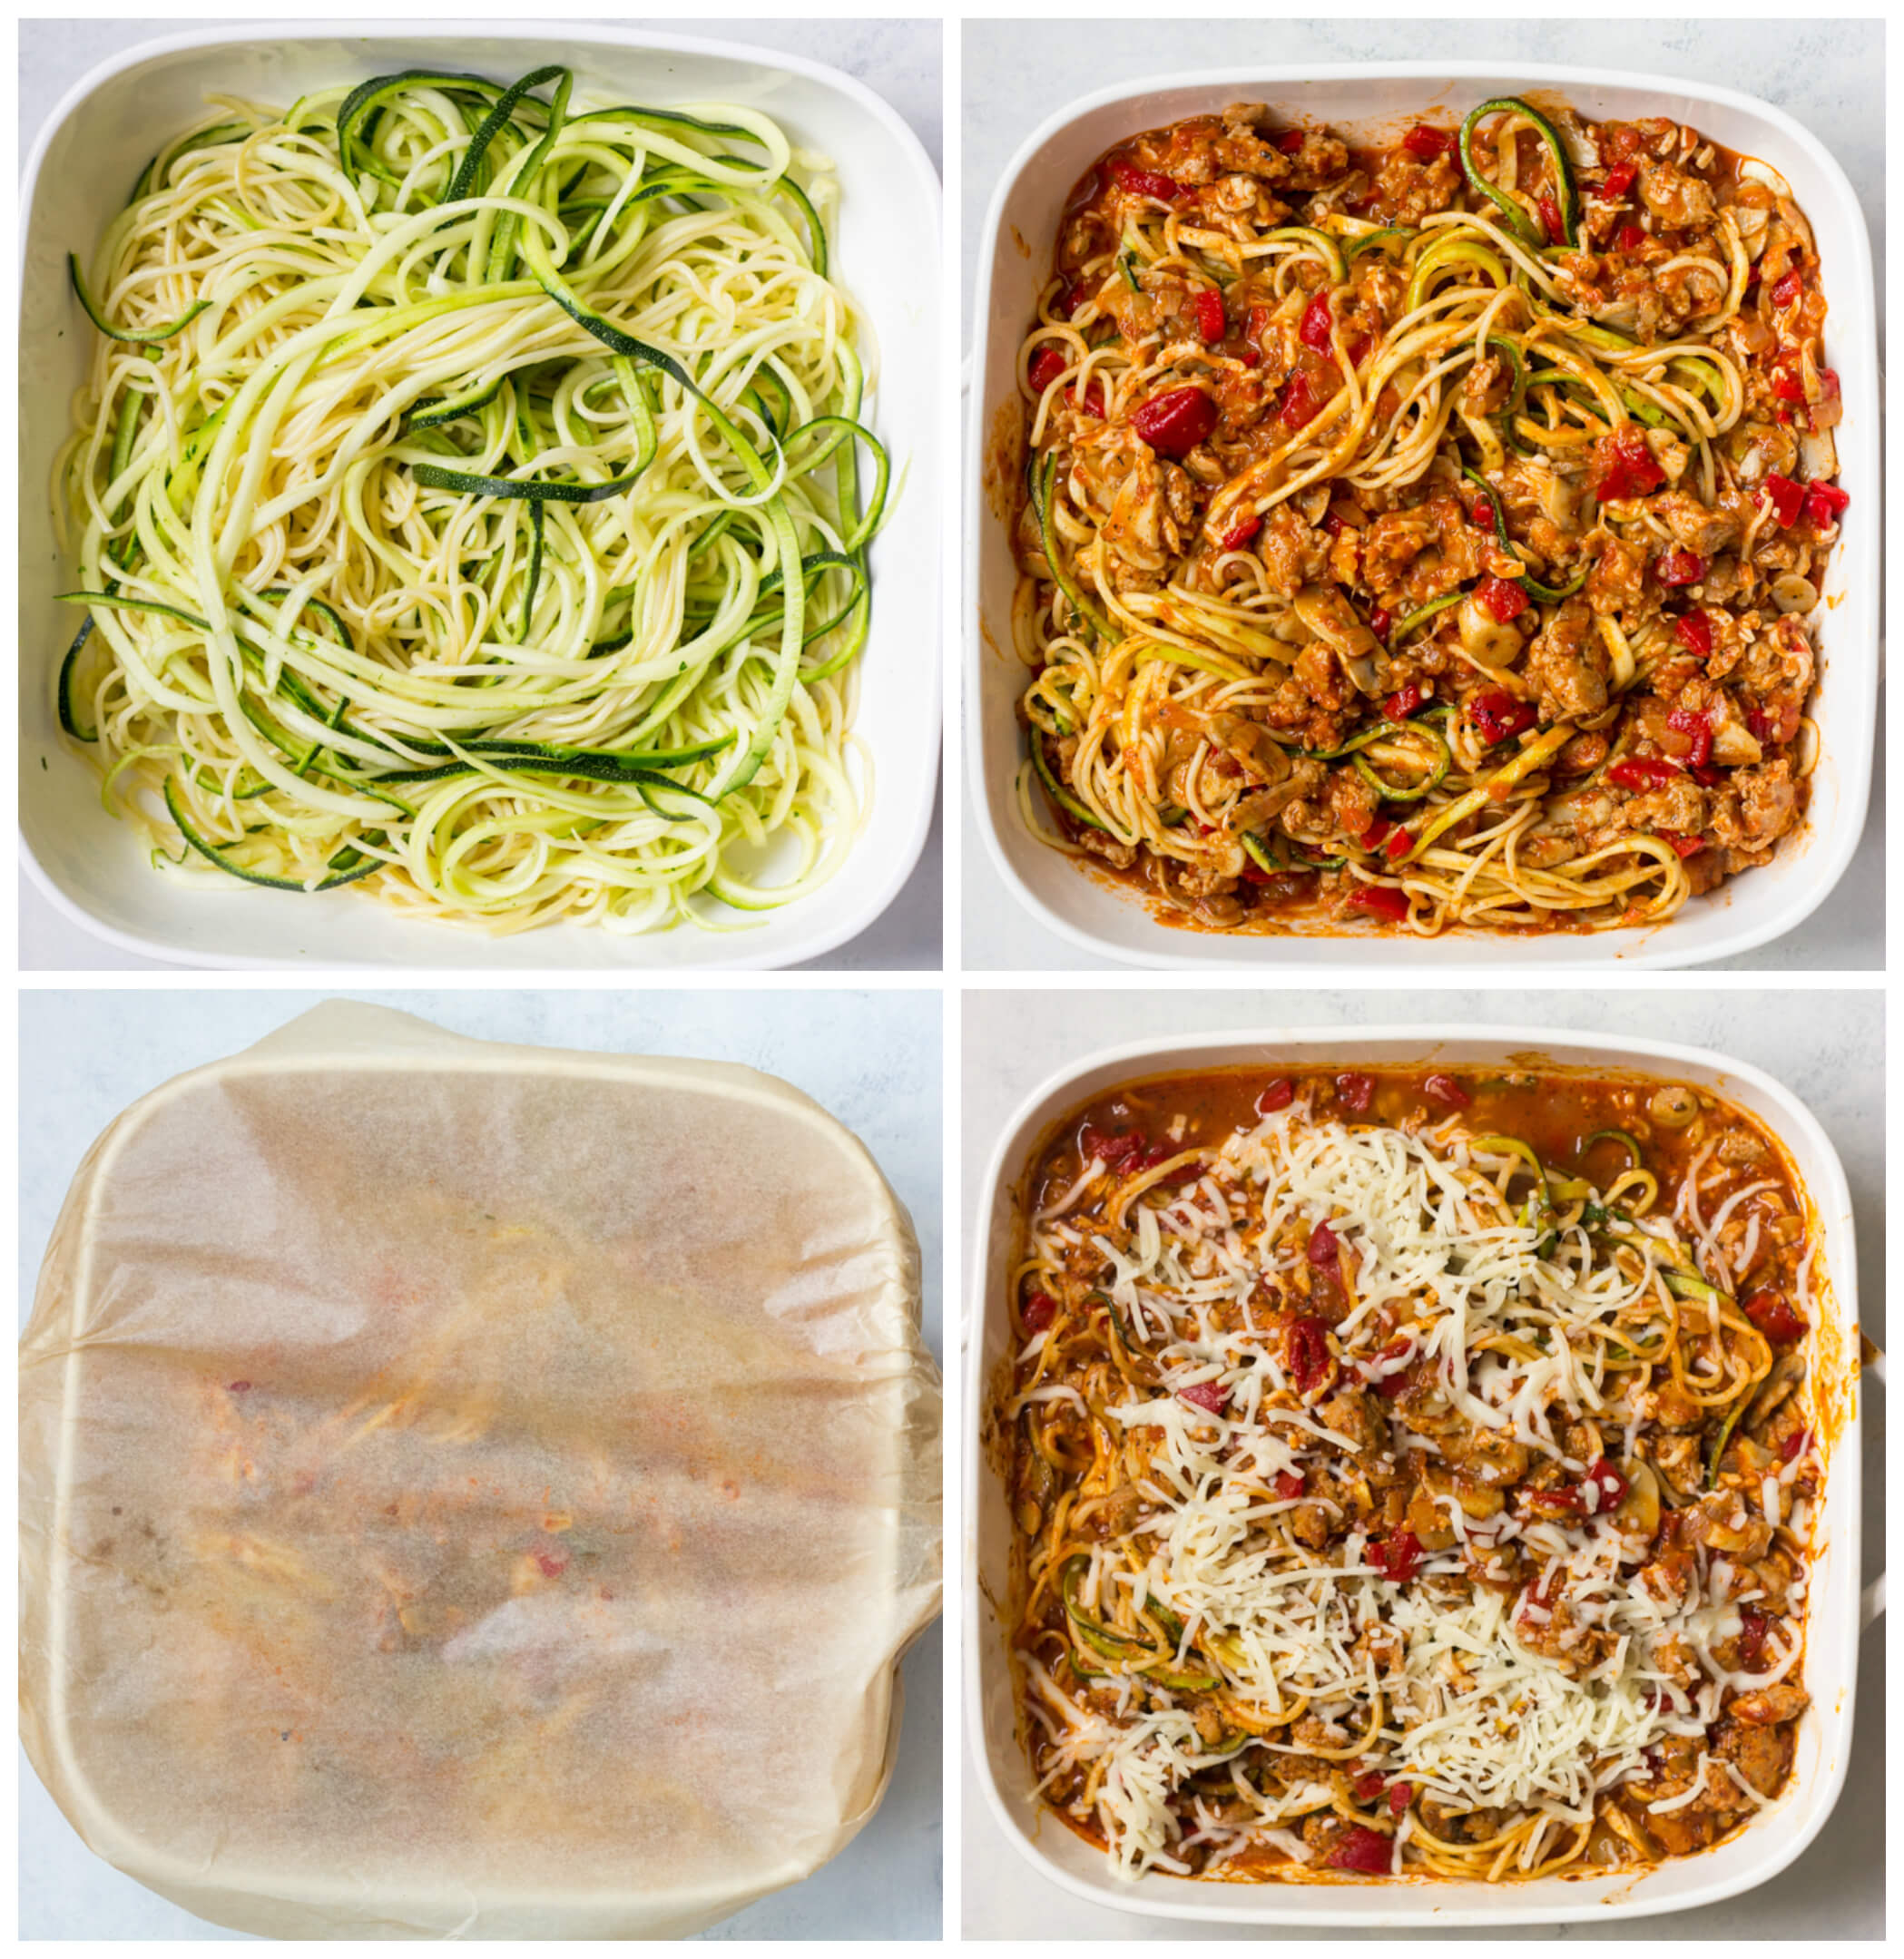 Overhead veiw of four images showing how to make a spaghetti bake